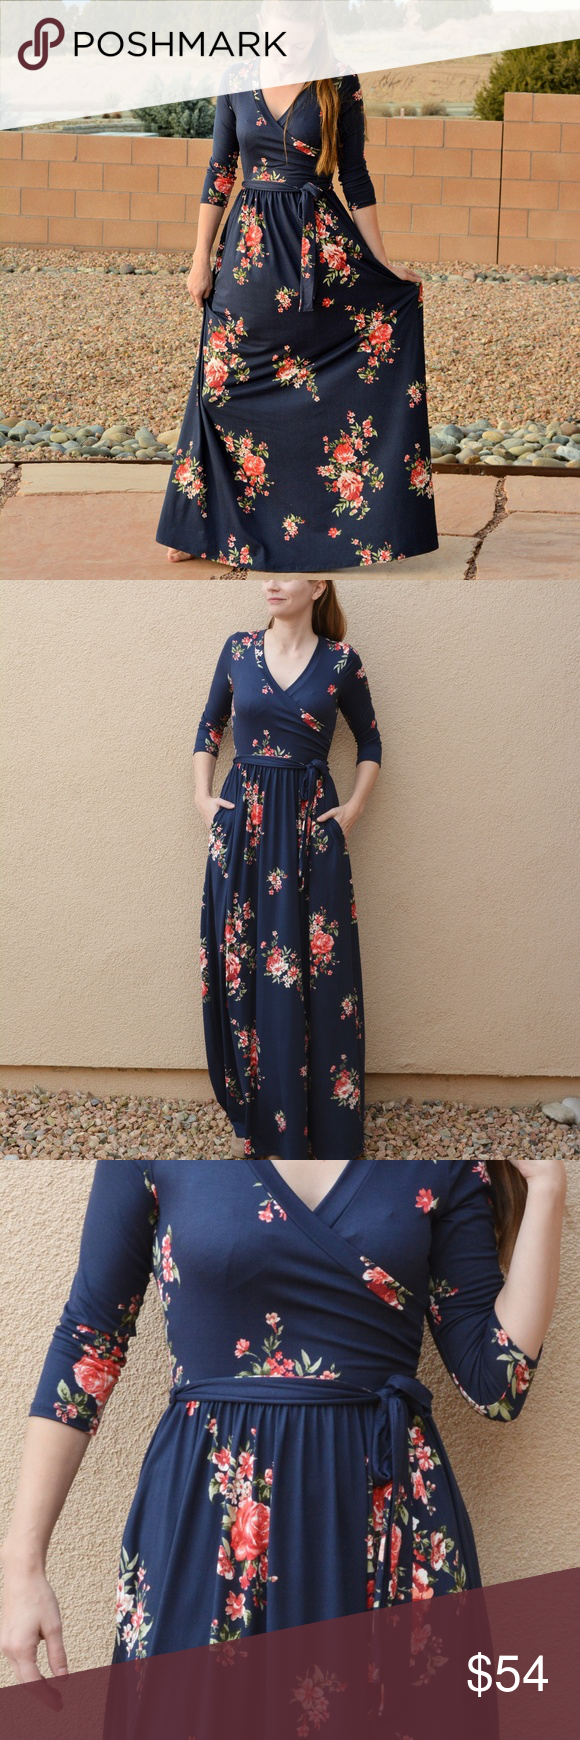 49738213c8c NWT Navy Blue Floral Maxi Dress Genuine Reborn J - not a cheap knockoff! New